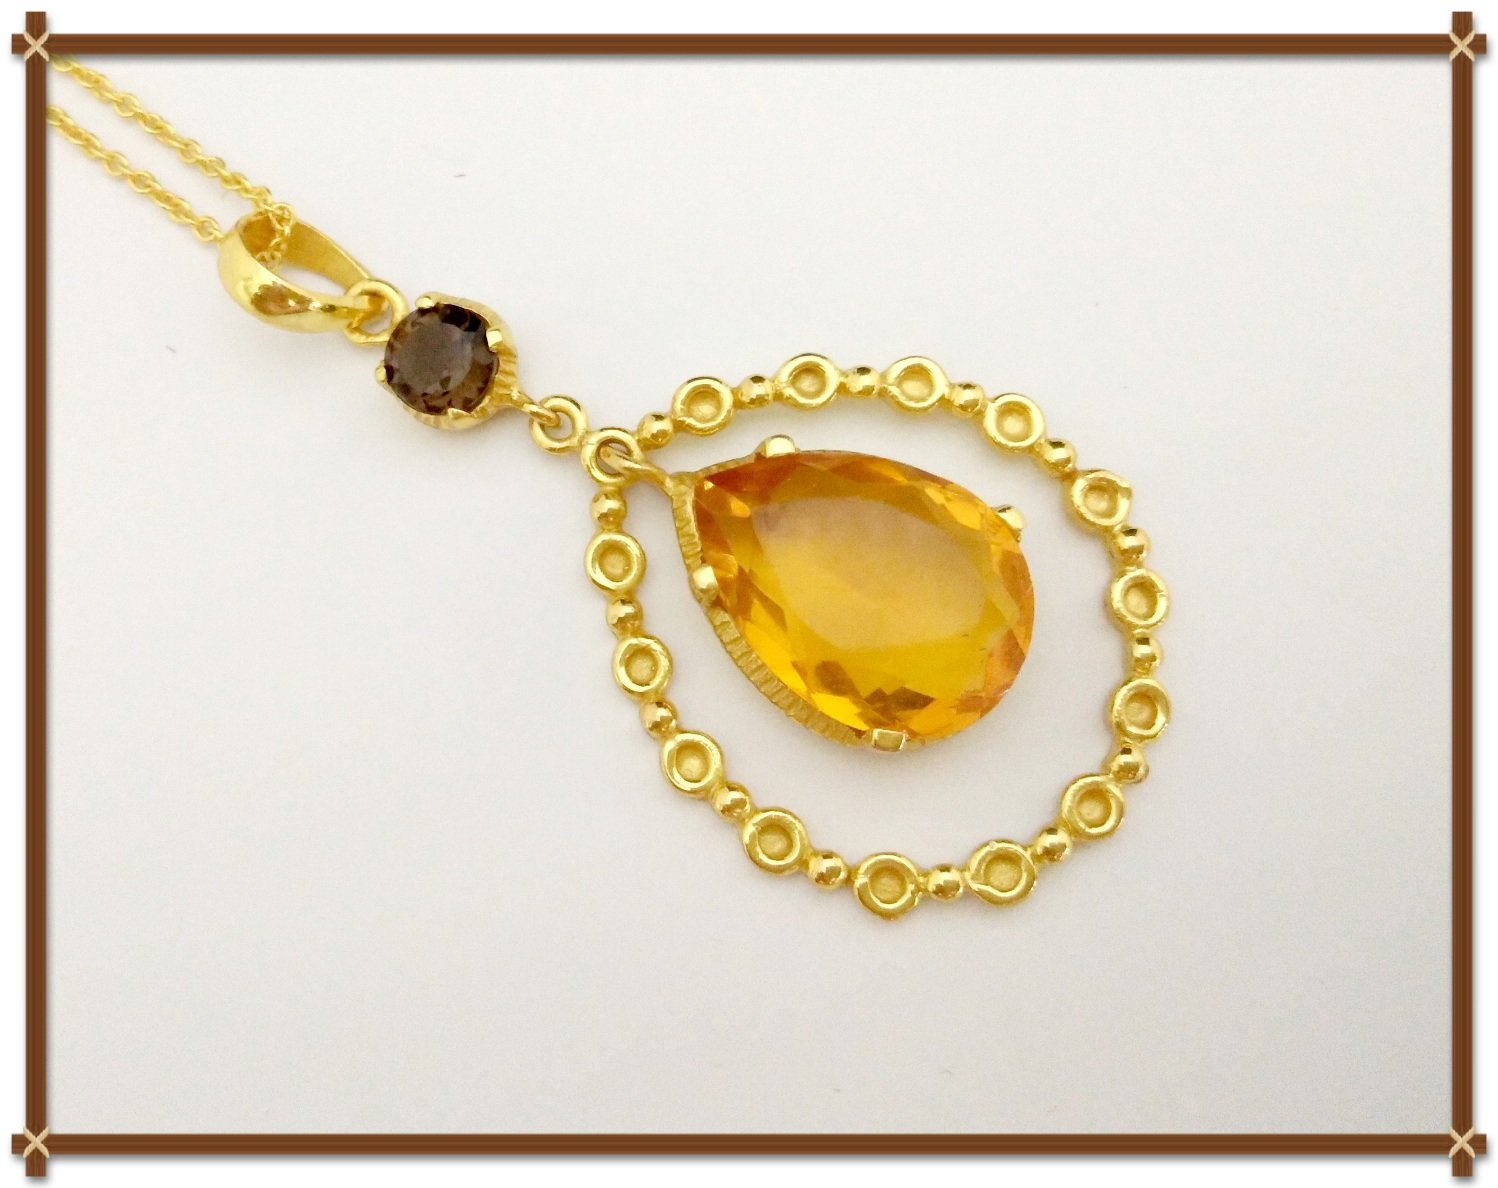 18k Yellow Gold Desire Necklace With Smoky Quartz Semi Gemstones And Citrine